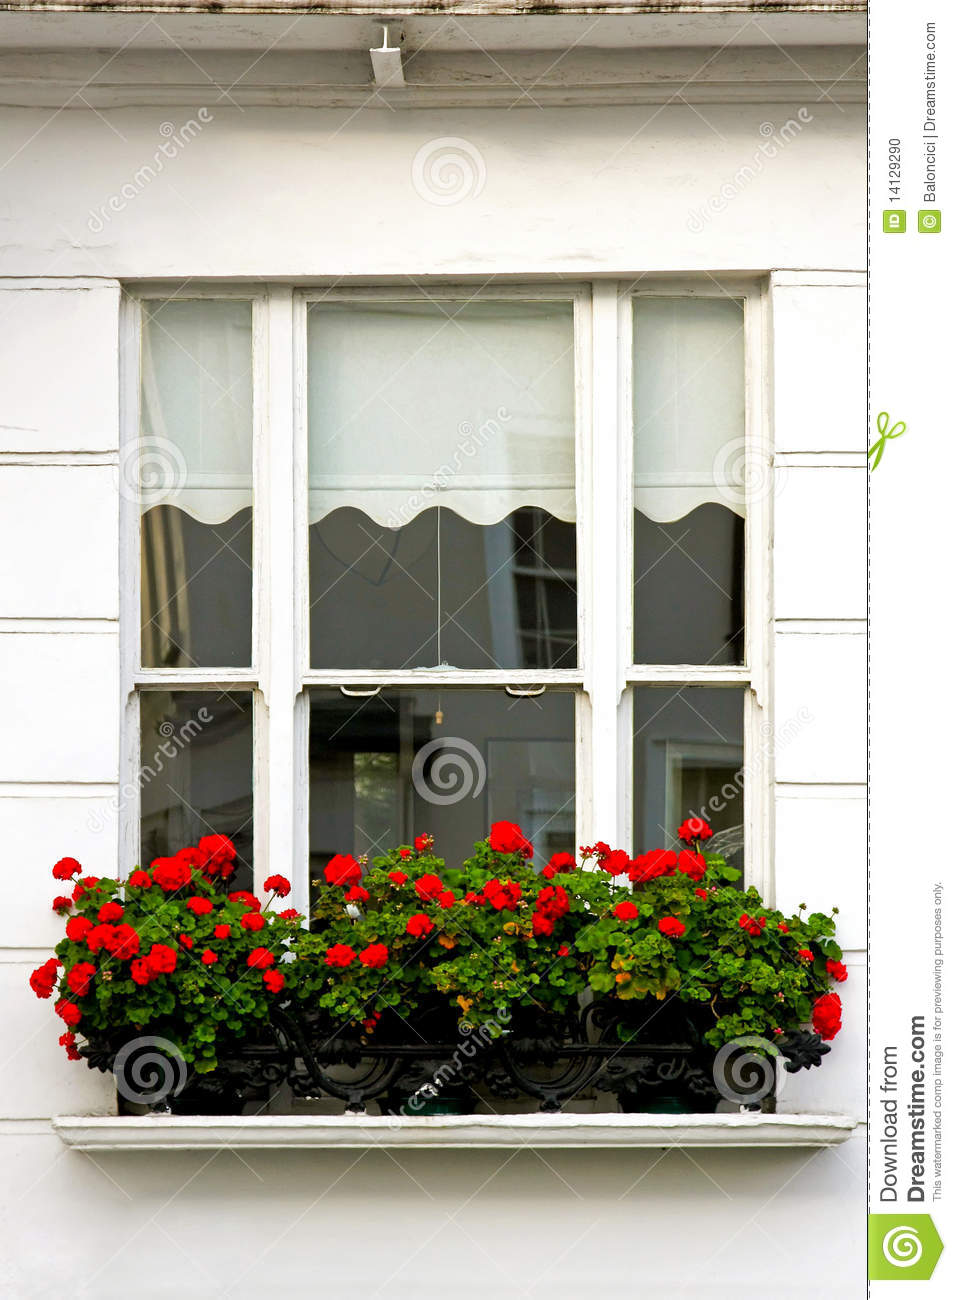 fensterblumen stockfoto bild von betriebe fassade fenster 14129290. Black Bedroom Furniture Sets. Home Design Ideas